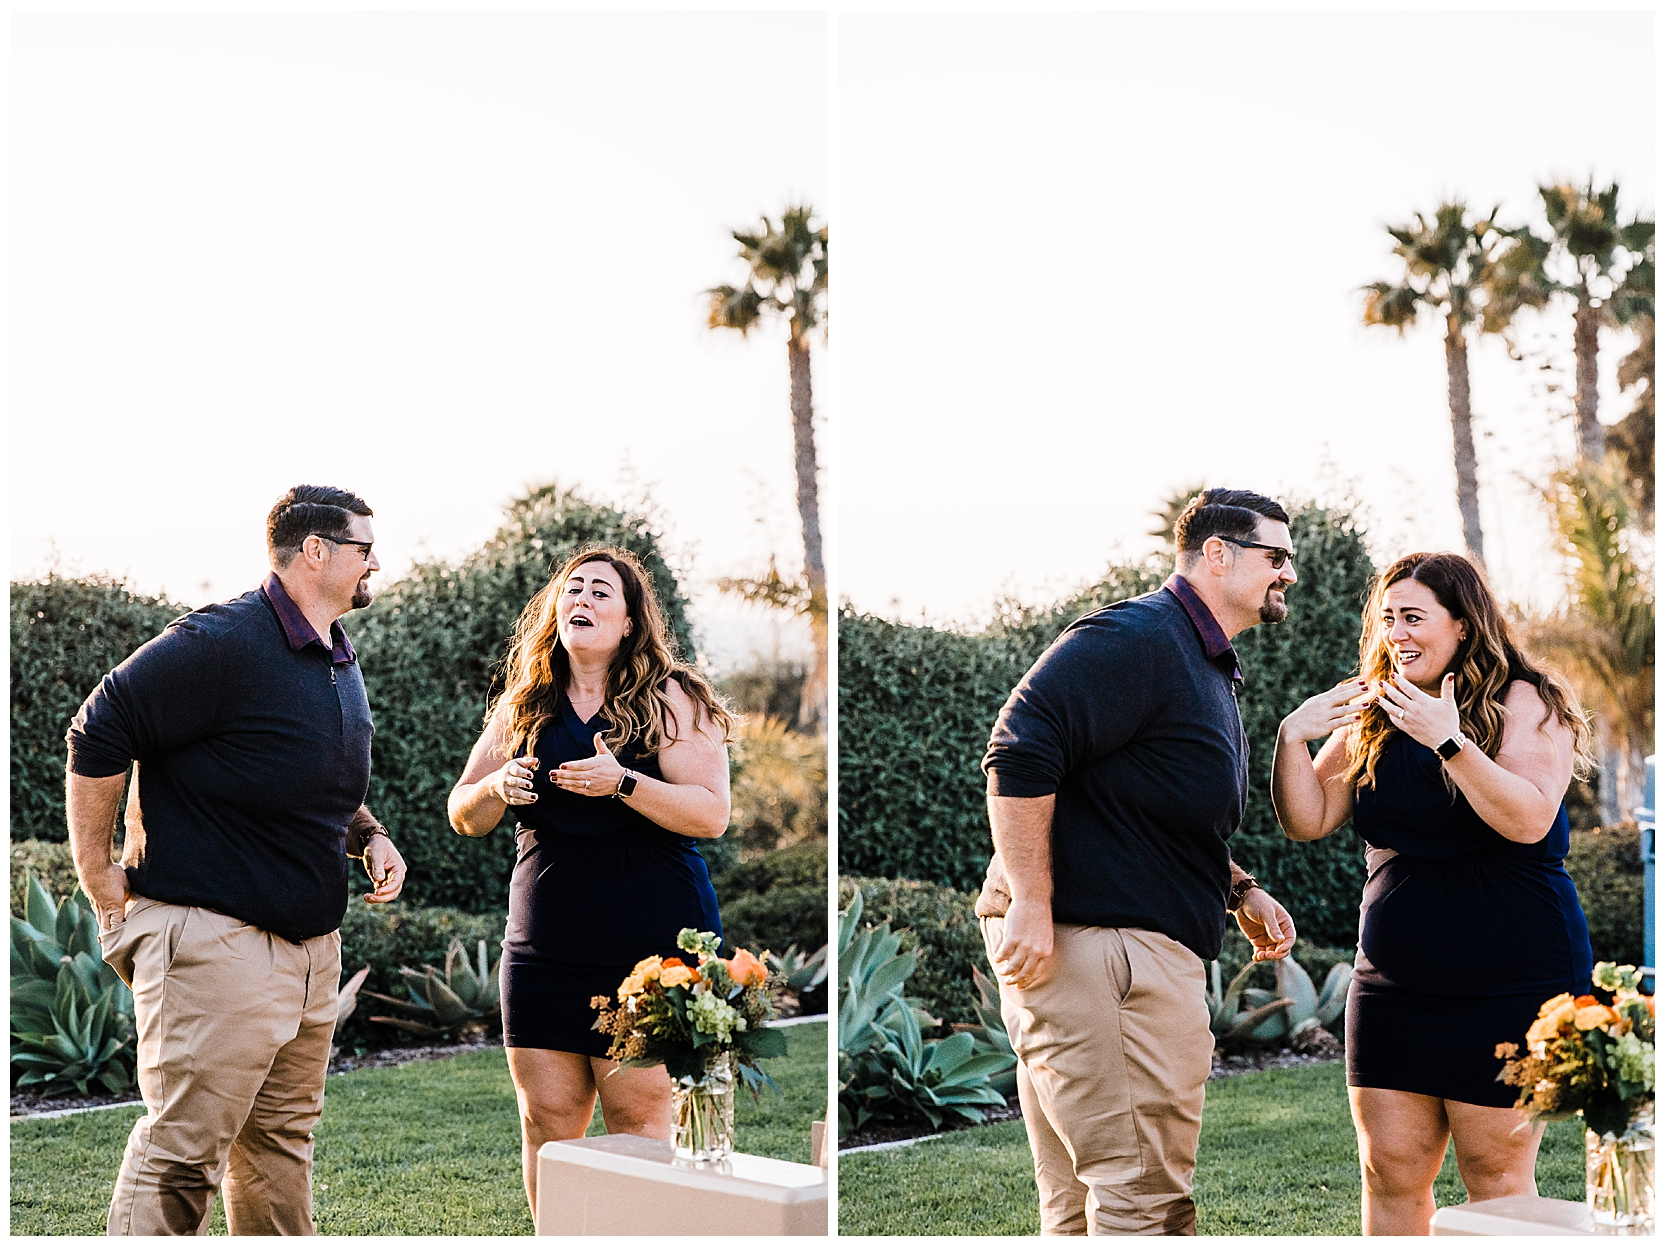 jessicafredericks_huntingtonbeach_proposal_sunset_engagement_0010.jpg